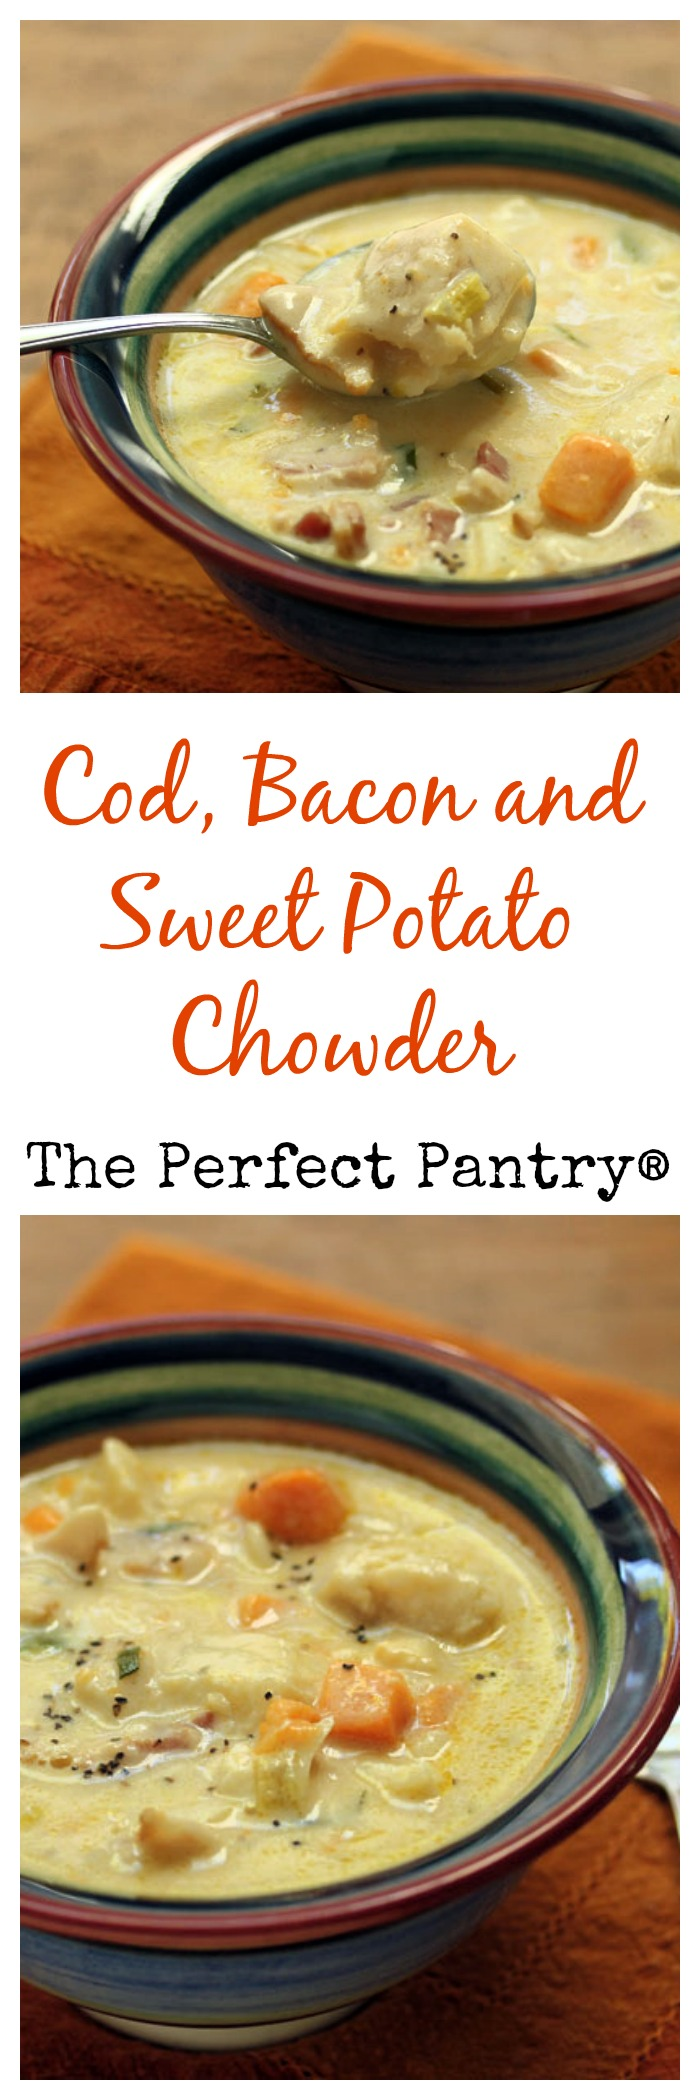 Cod, bacon and sweet potato chowder, a twist on the New England classic.